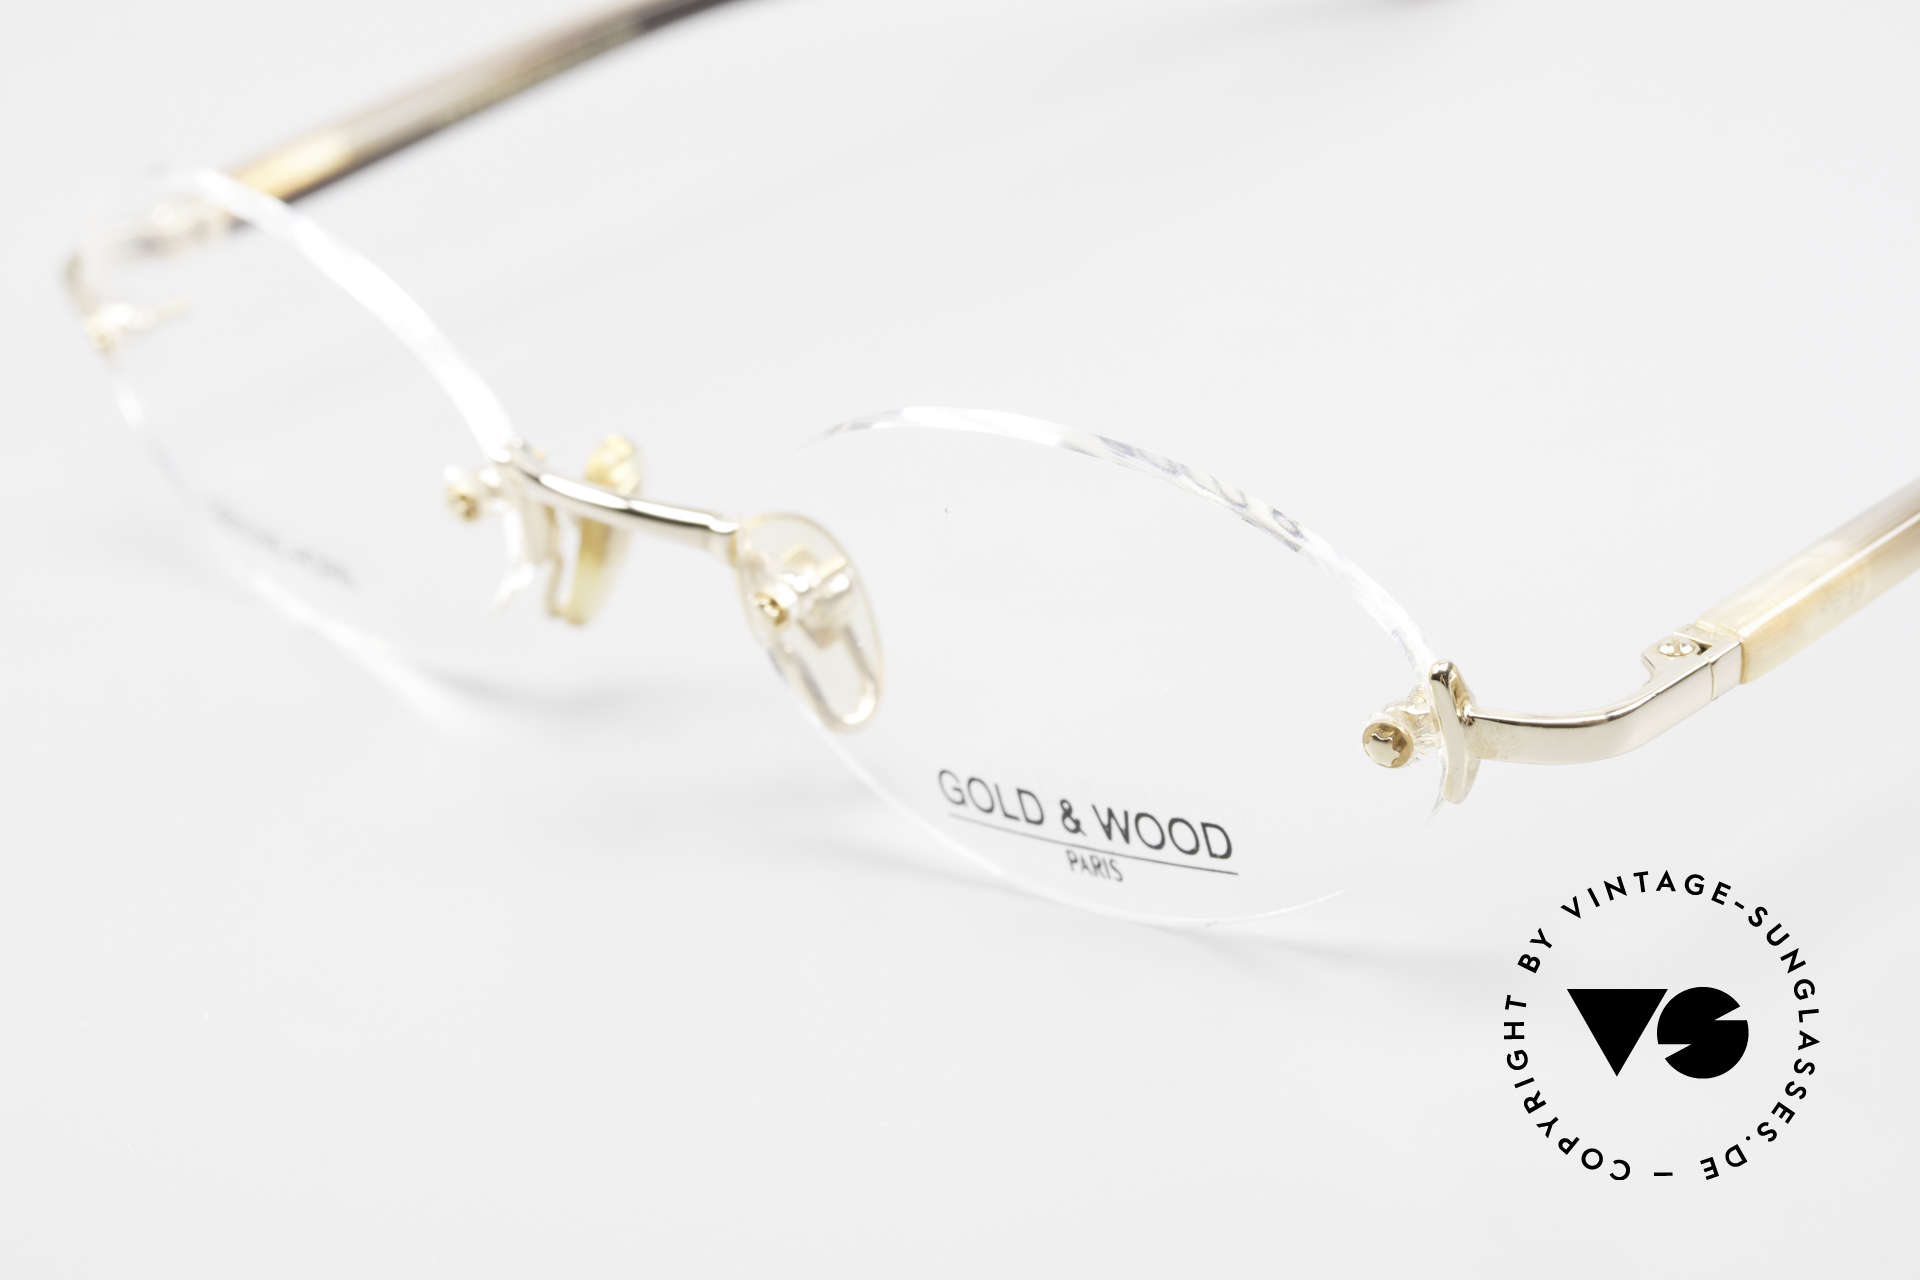 Gold & Wood 331 Rimless Genuine Horn Glasses, unworn rarity (for all lovers of quality), unique, Made for Men and Women